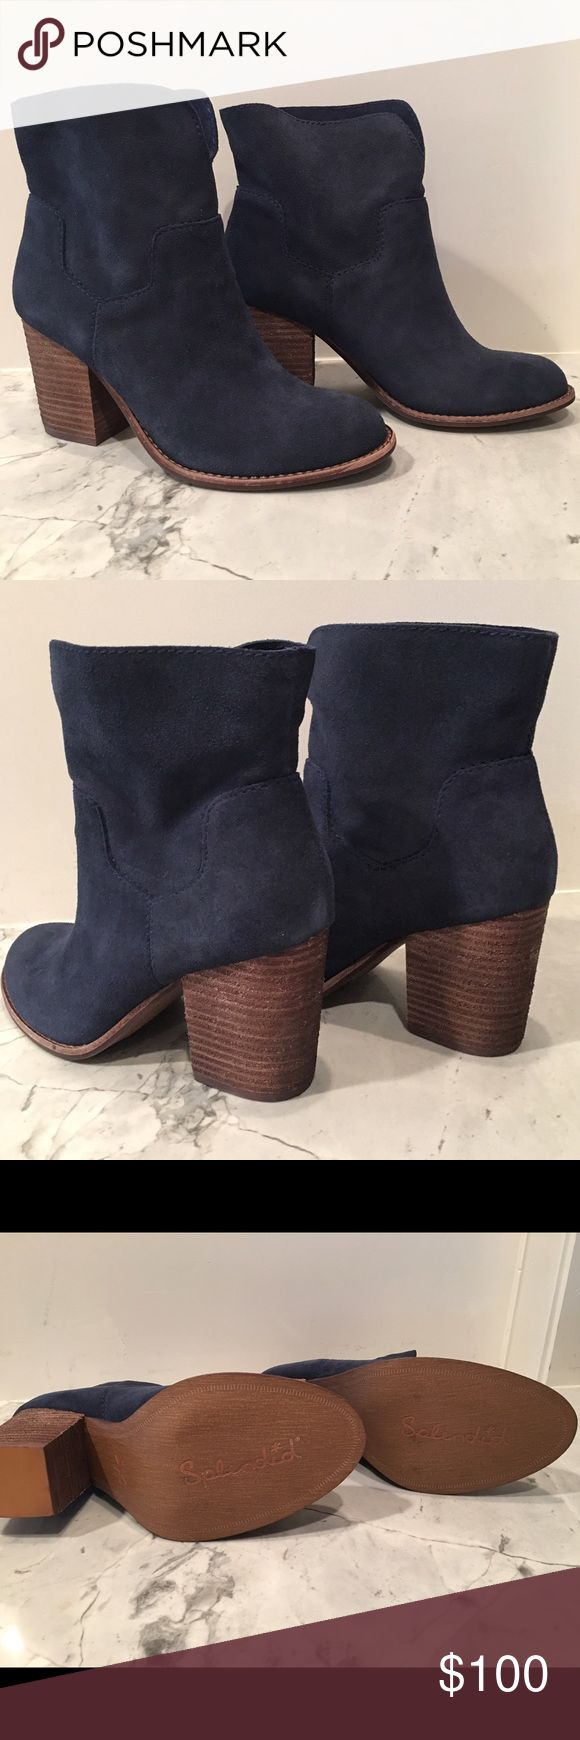 "NWT Splendid ""Murietta"" Heels - Size 8.5 Retail: $225. Gorgeous, navy, ankle boots from Splendid. ""Murietta"" style. Cow sides. Currently $168 on Amazon. Never worn. Includes original box. Splendid Shoes Ankle Boots & Booties"